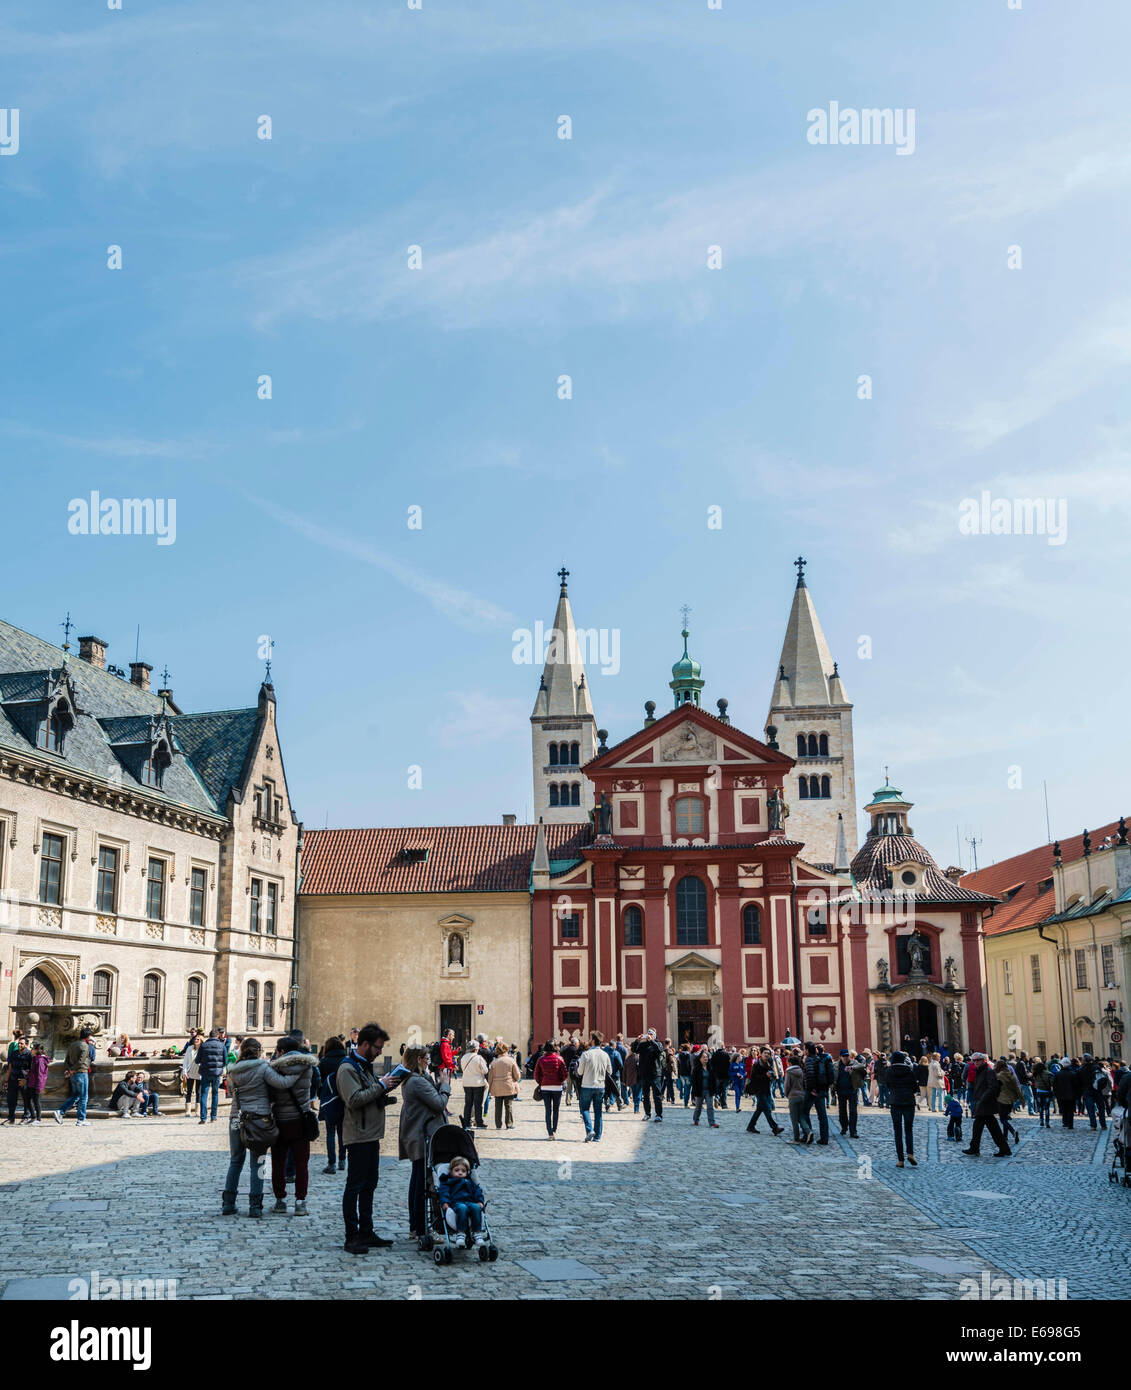 St. George's Basilica, Prague Castle, Hradcany, Prague, Czech Republic - Stock Image